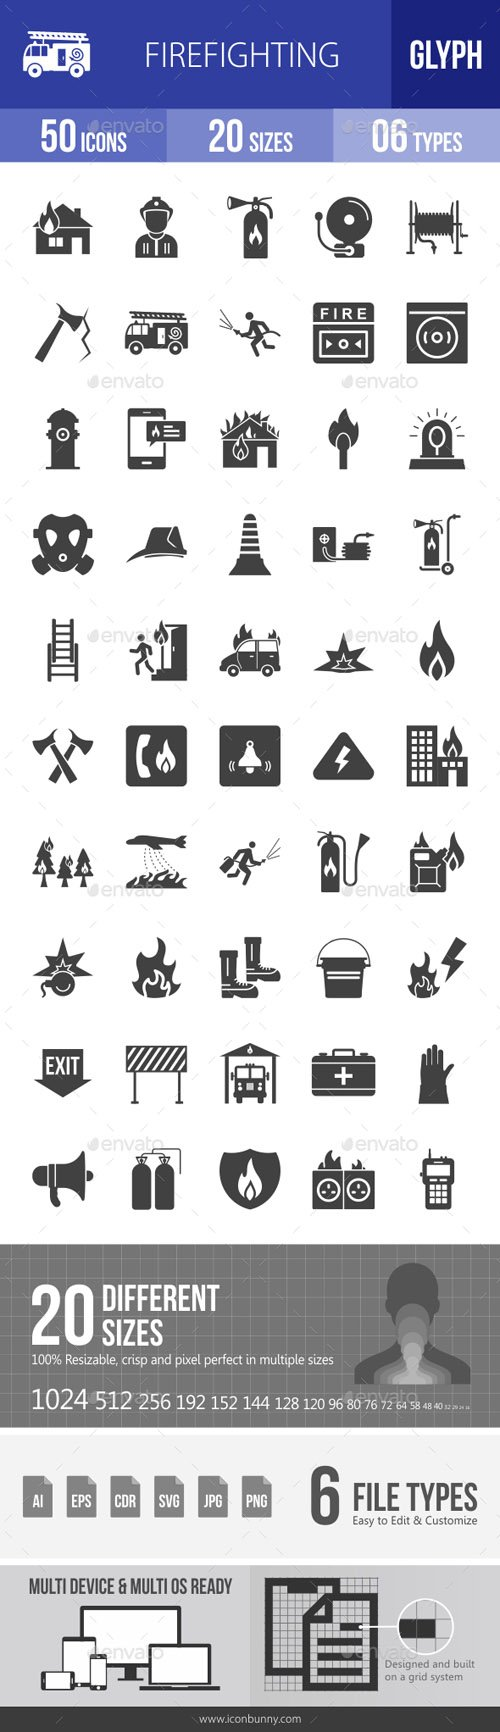 Firefighting Glyph Icons 18422506